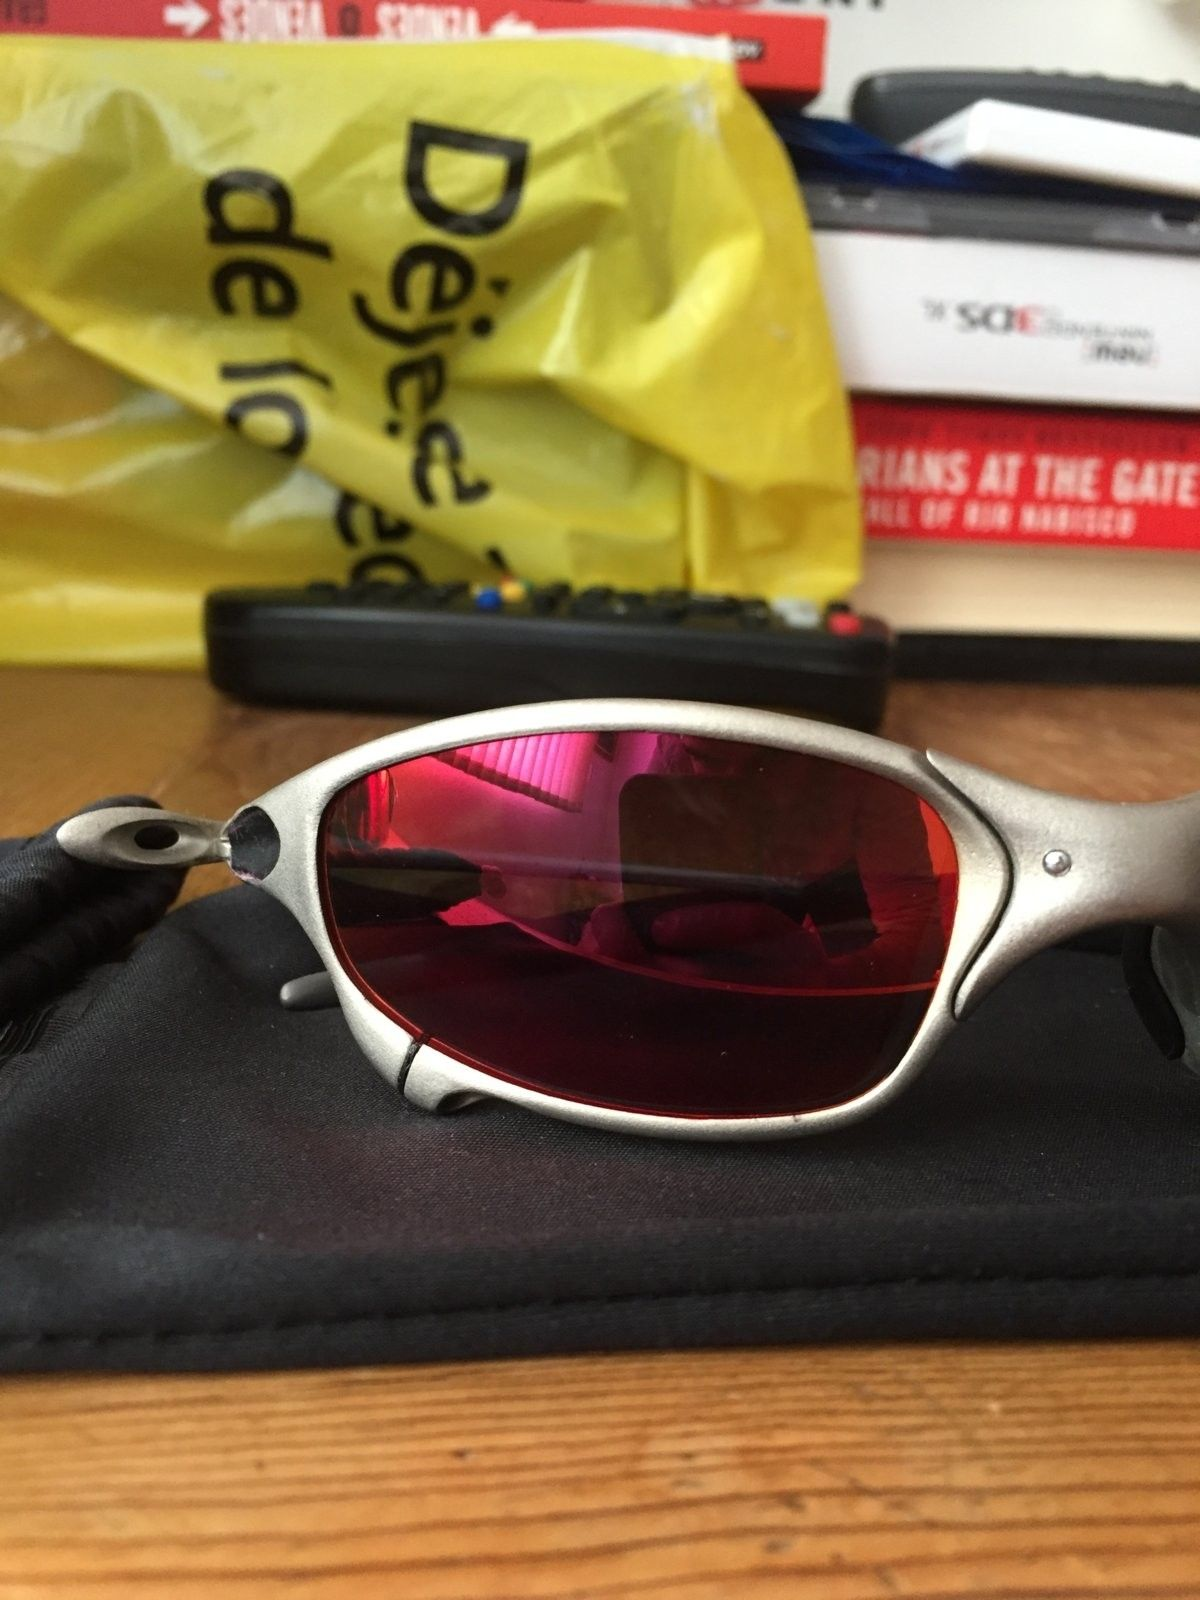 Ruby vs Torch vs LG Red Mirror Lenses - IMG_2689.JPG